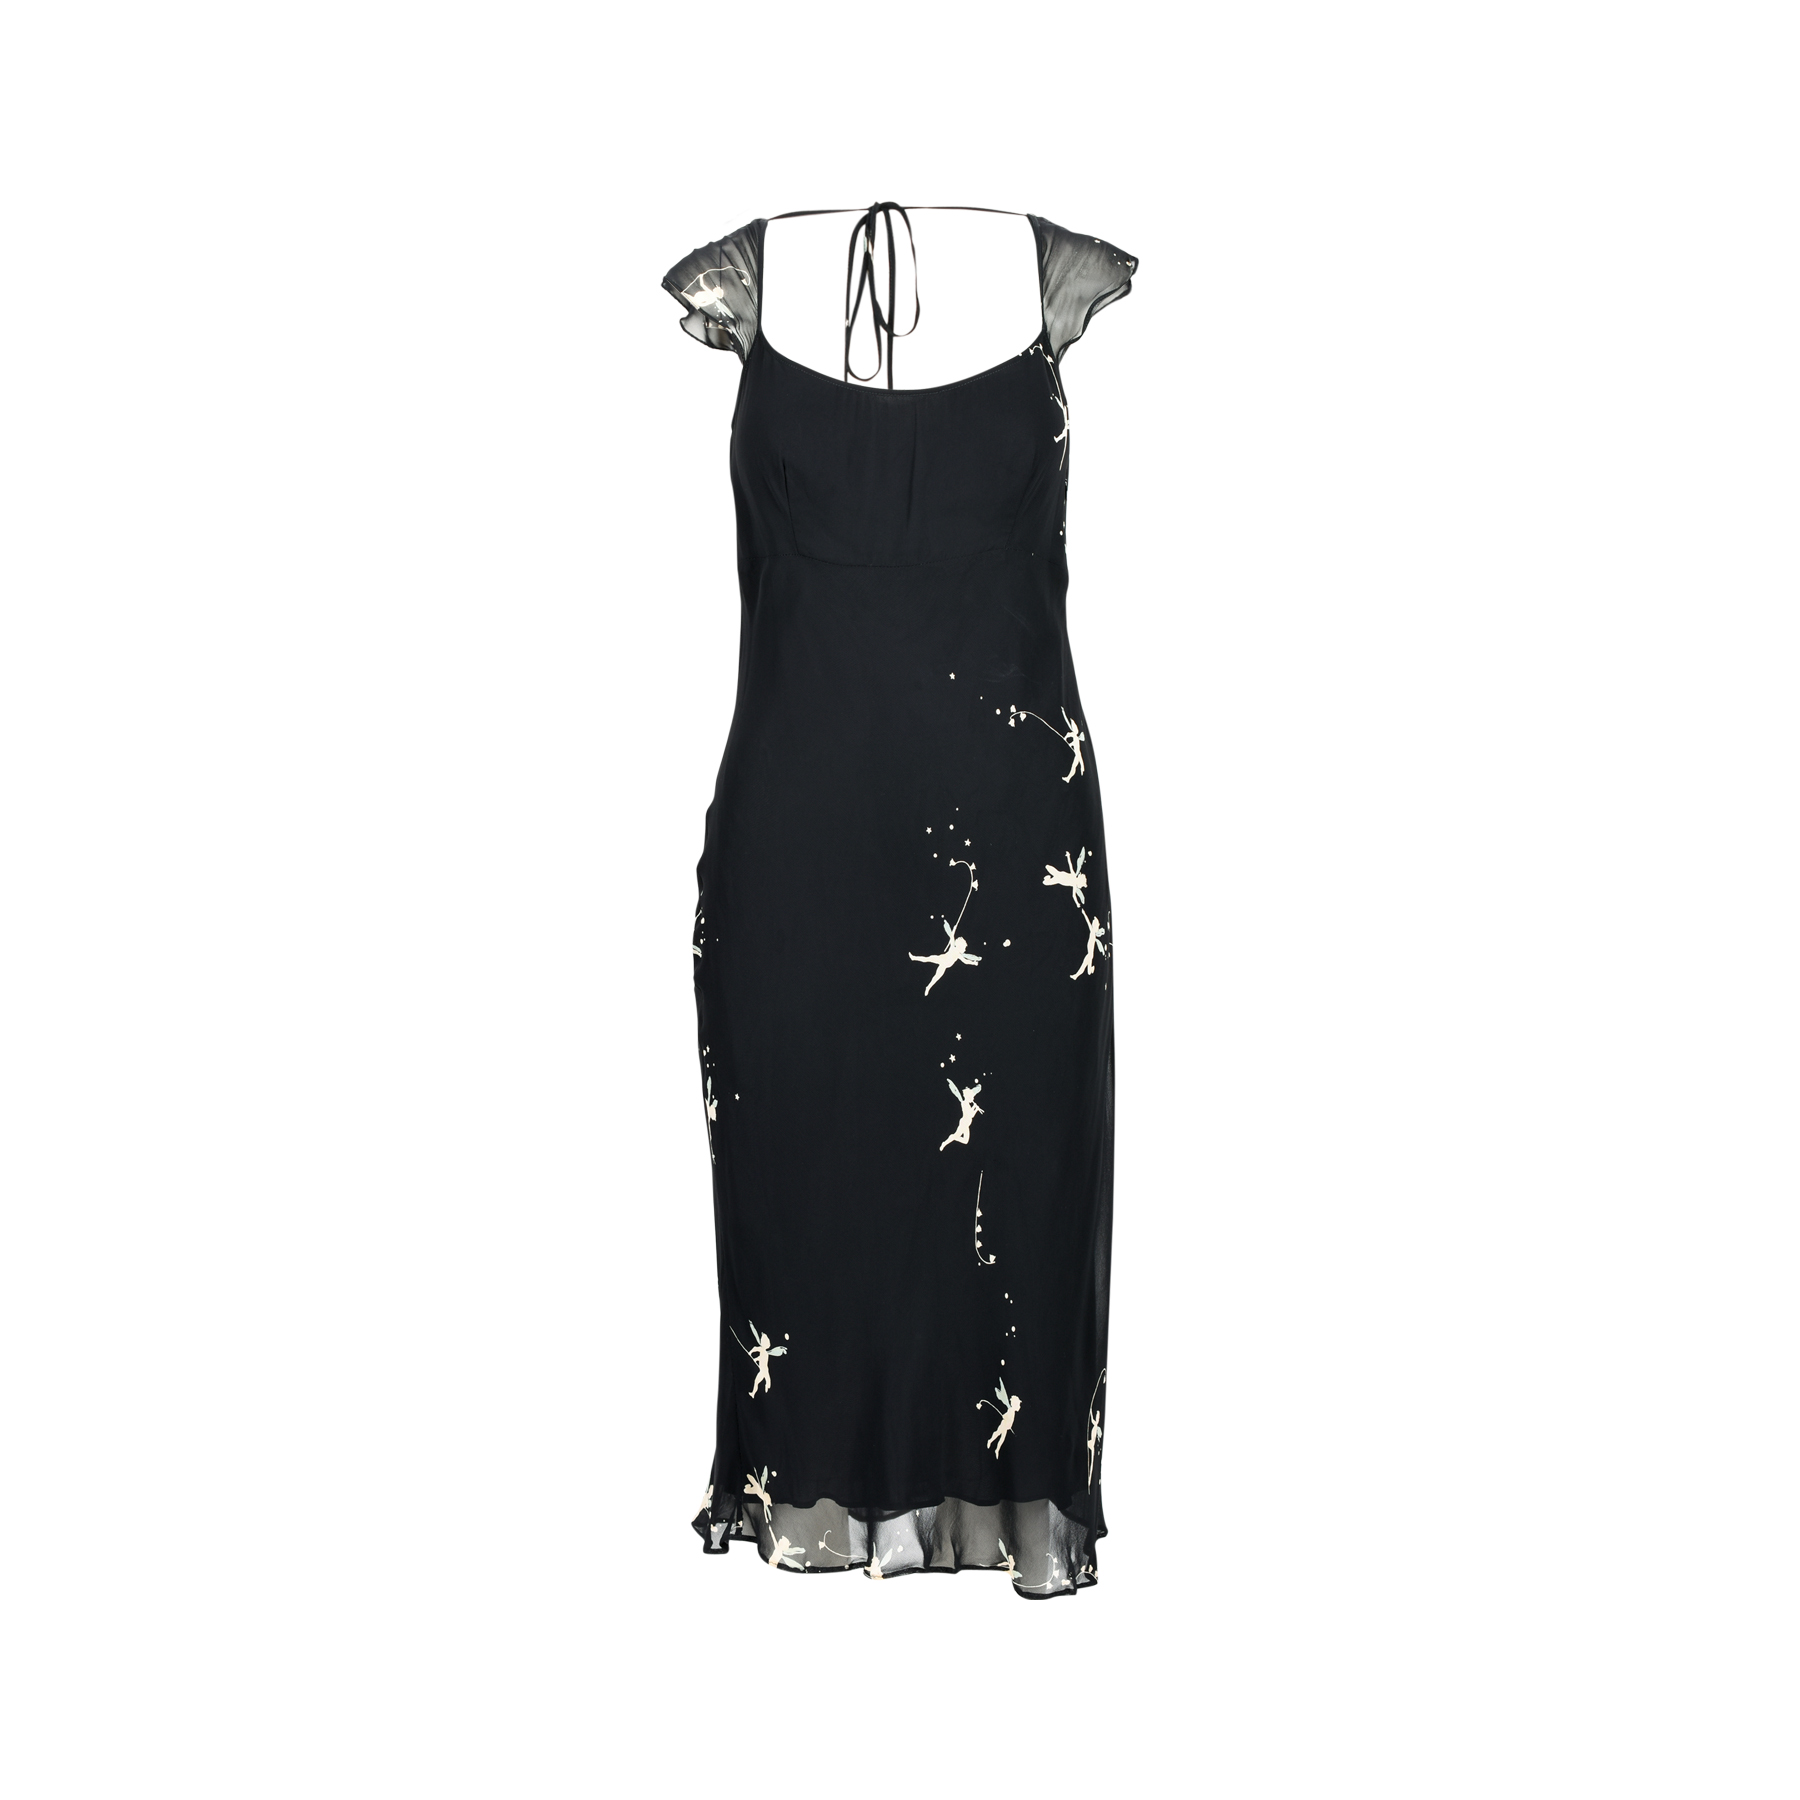 dba3a8fe6a3f Authentic Second Hand Moschino Black Fairy Print Dress (PSS-463-00001) -  THE FIFTH COLLECTION